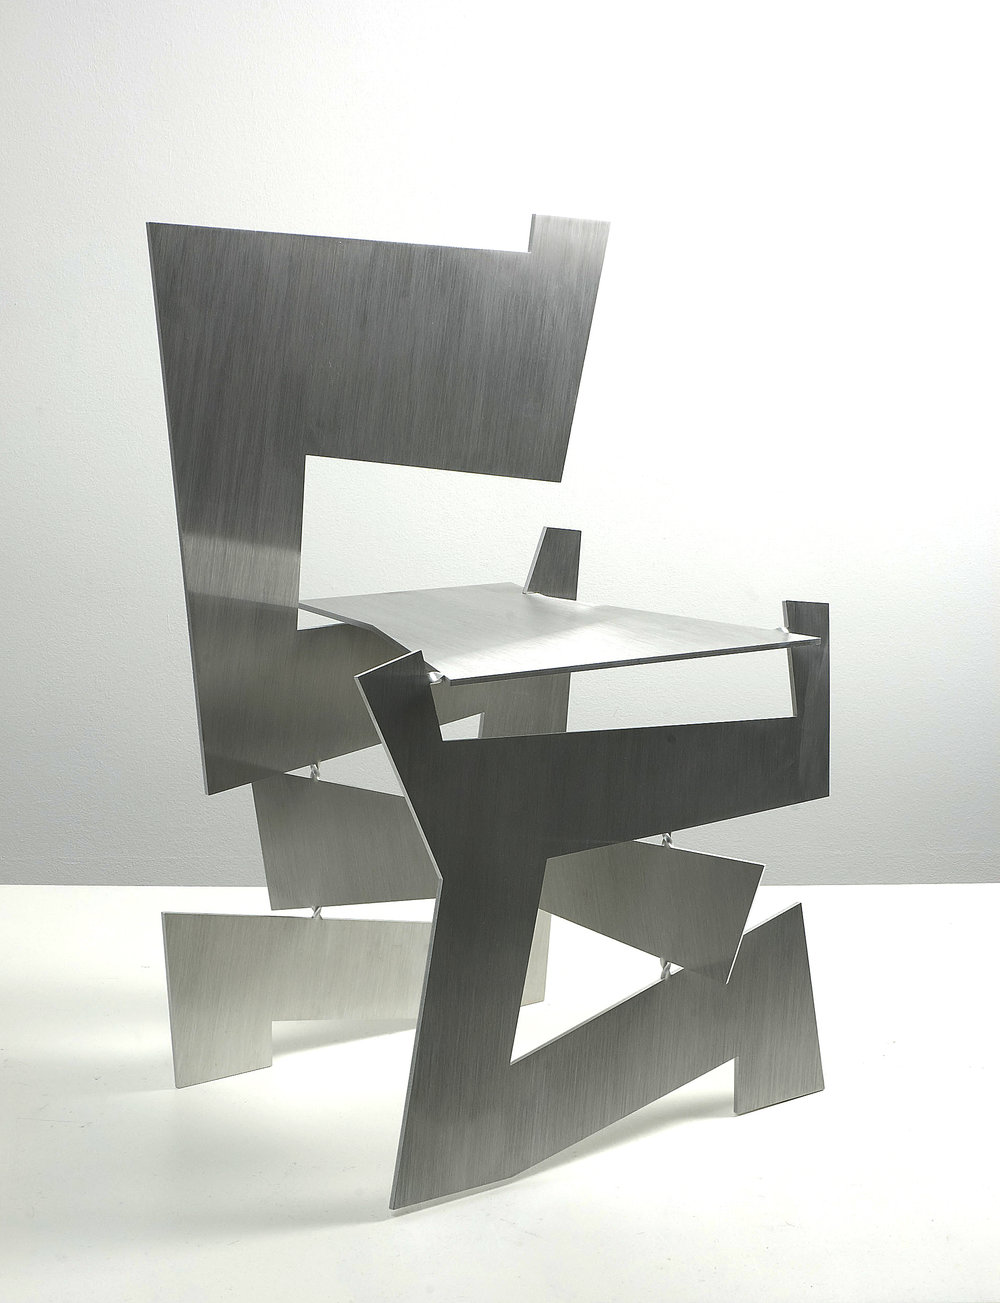 Kadushin-Graffiti chair 1.jpg